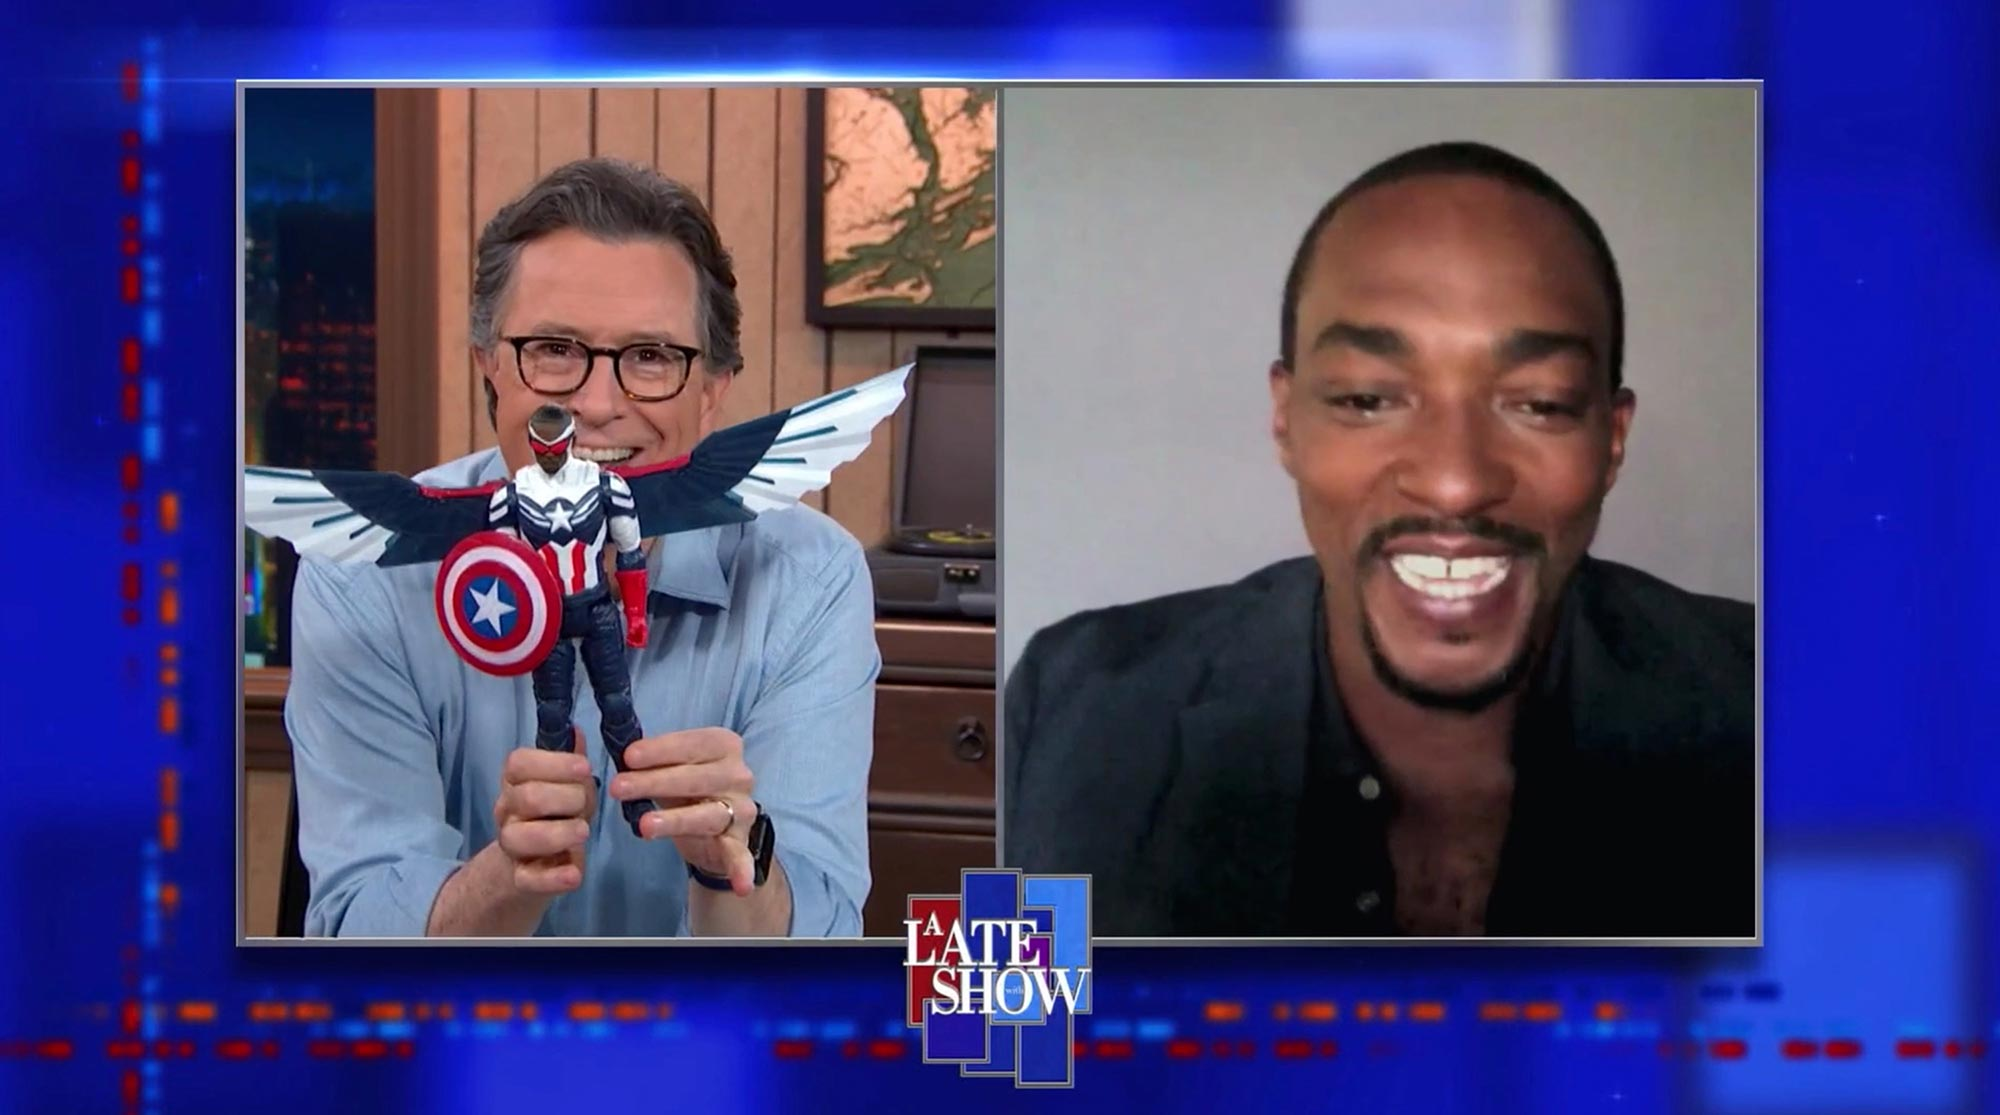 A Late Show with Stephen Colbert and guest Anthony Mackie